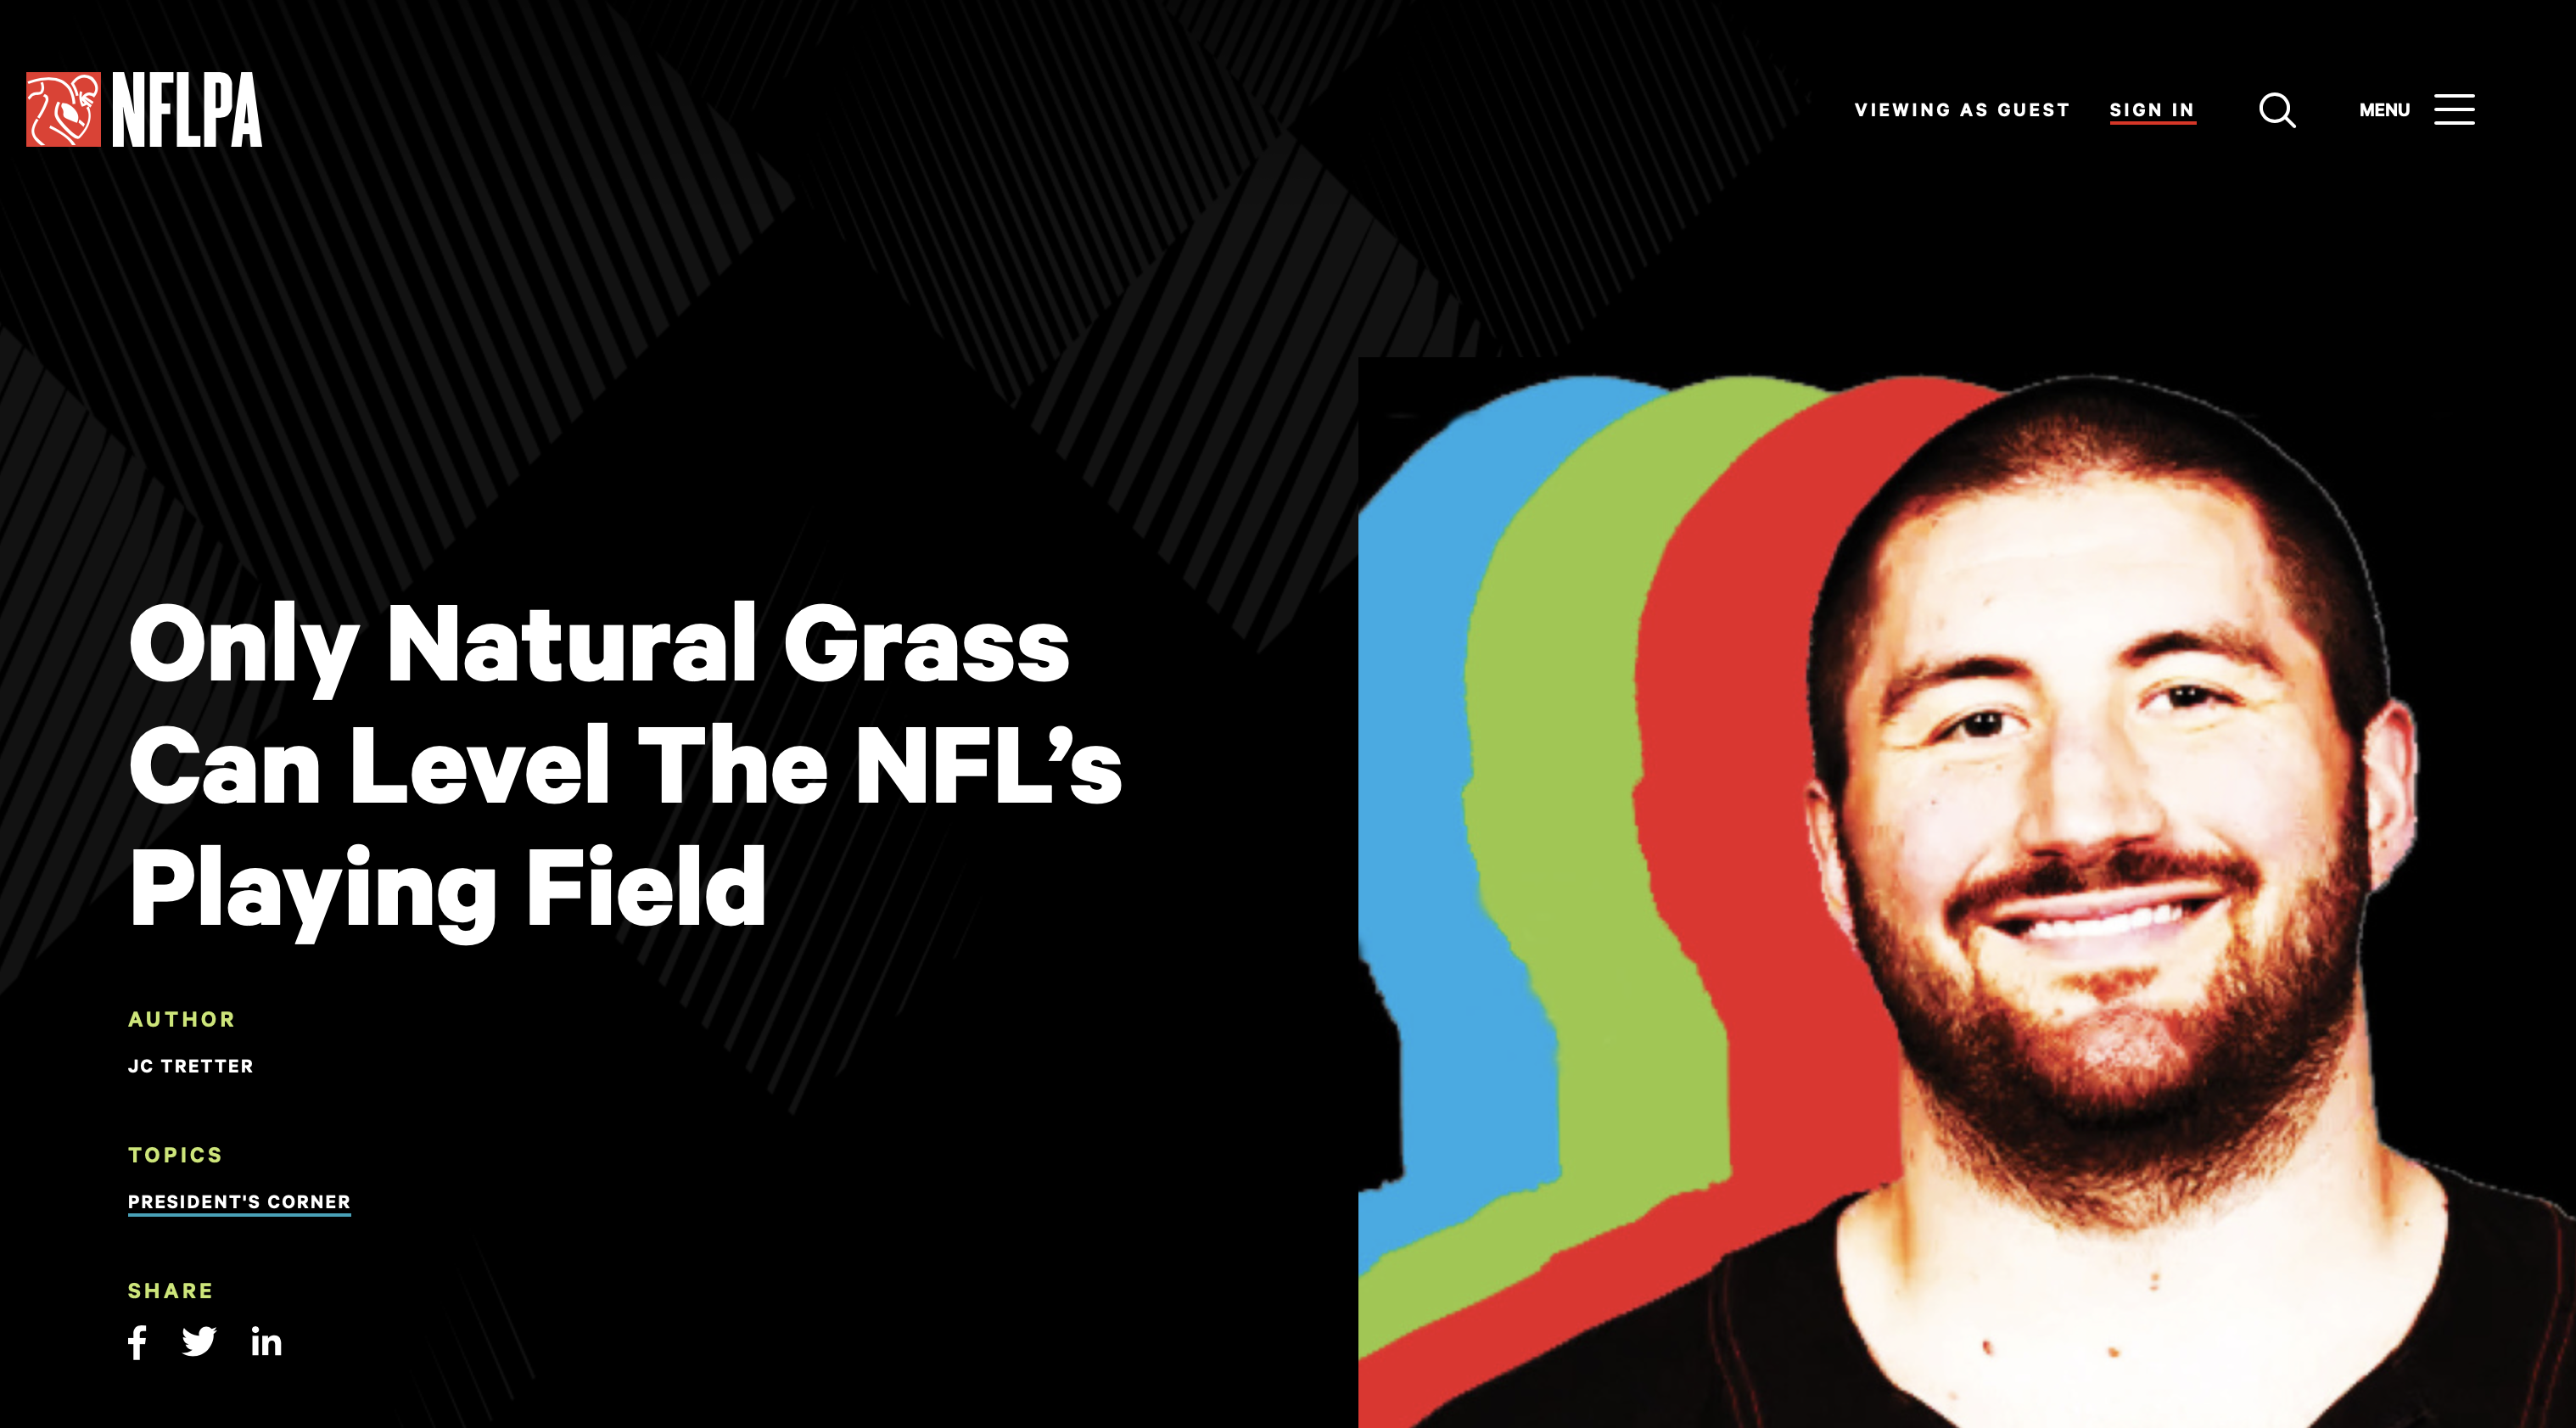 TPI Response to NFLPA Request for Grassing All NFL Fields